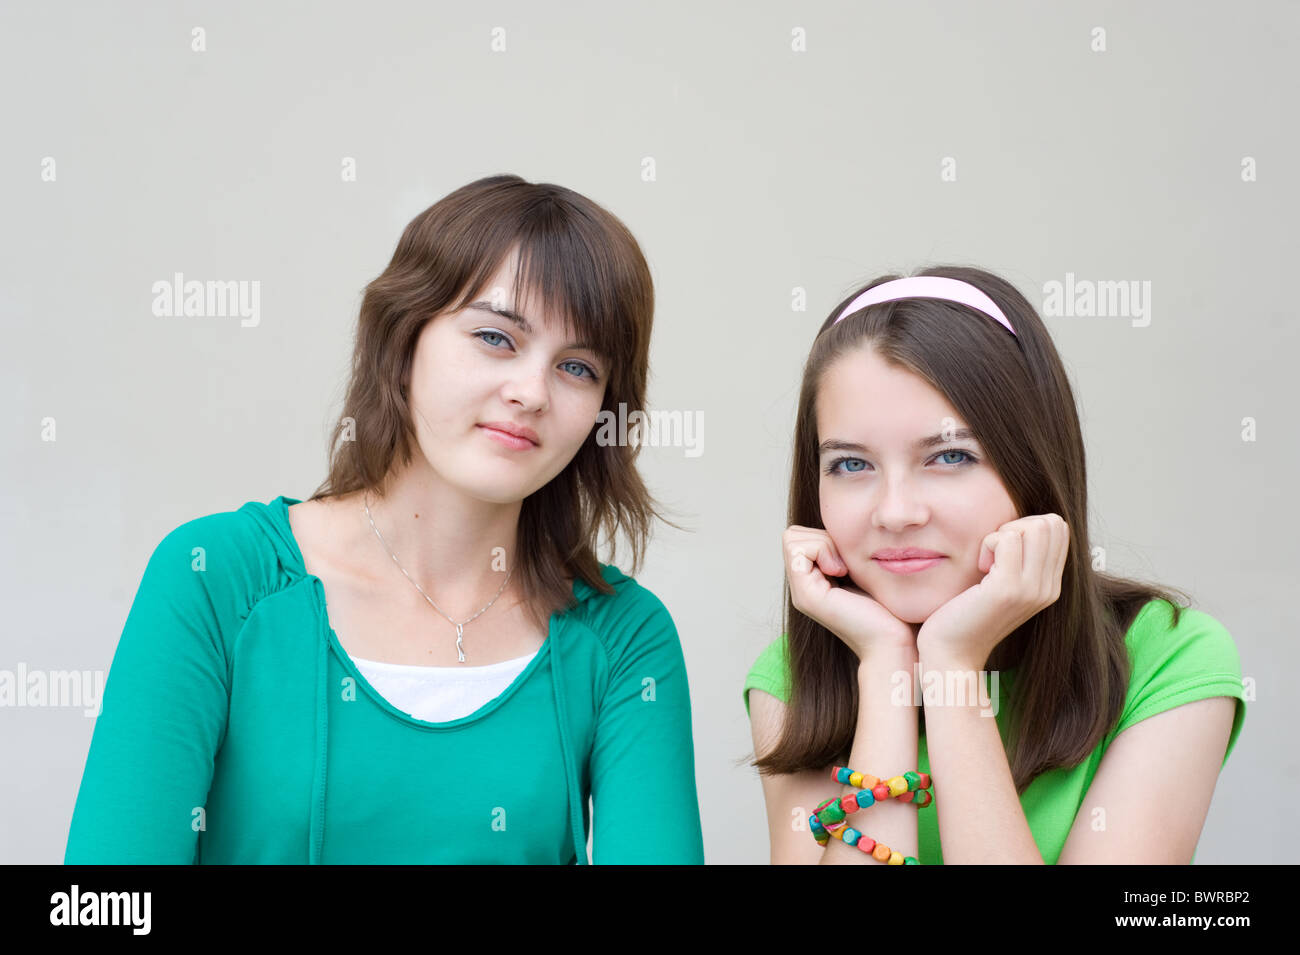 young beautiful european girls smile and look into camera - Stock Image